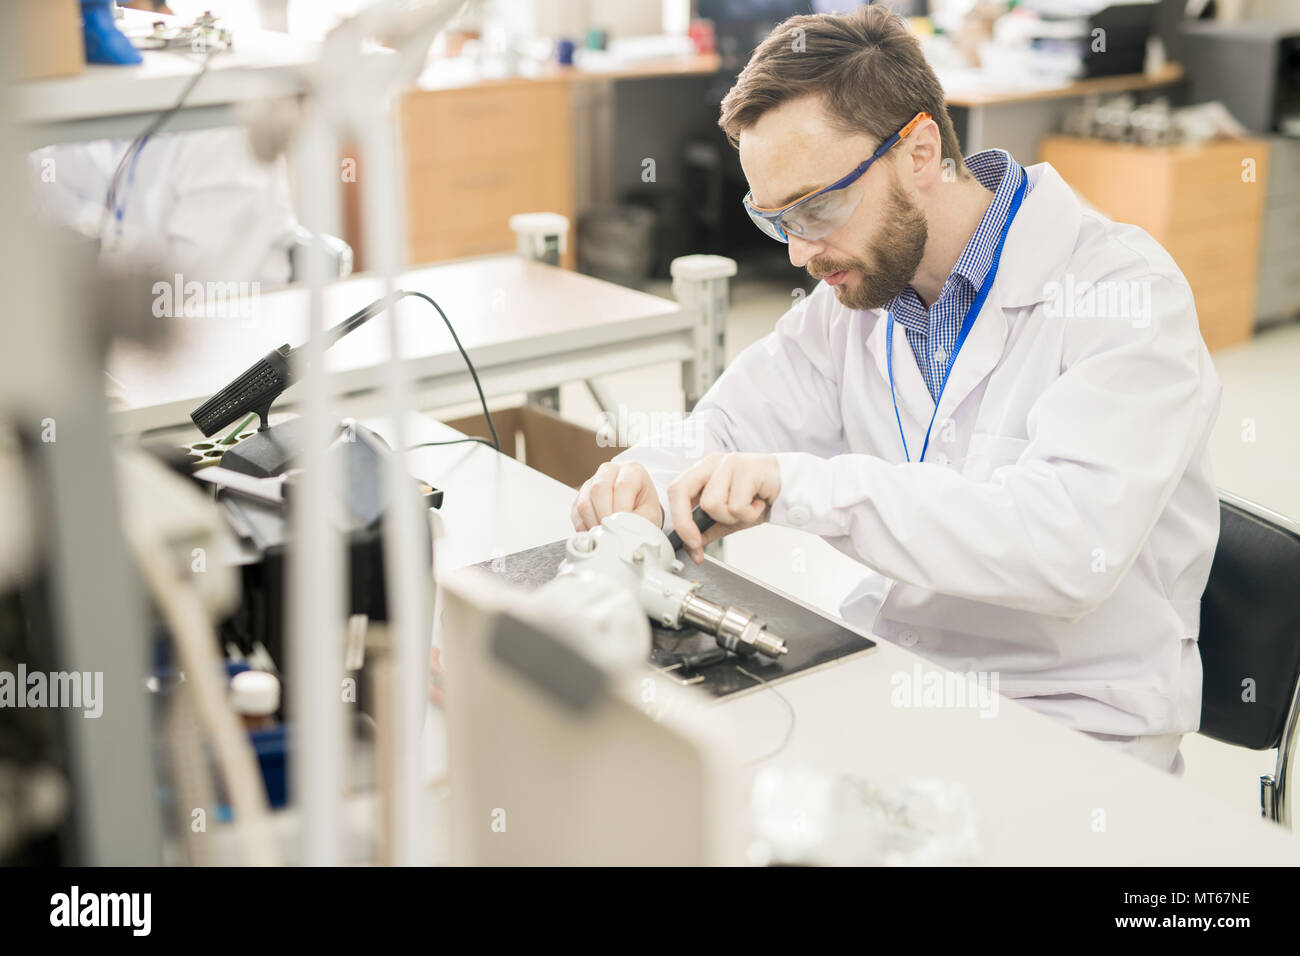 Experienced worker taking measuring device apart Stock Photo